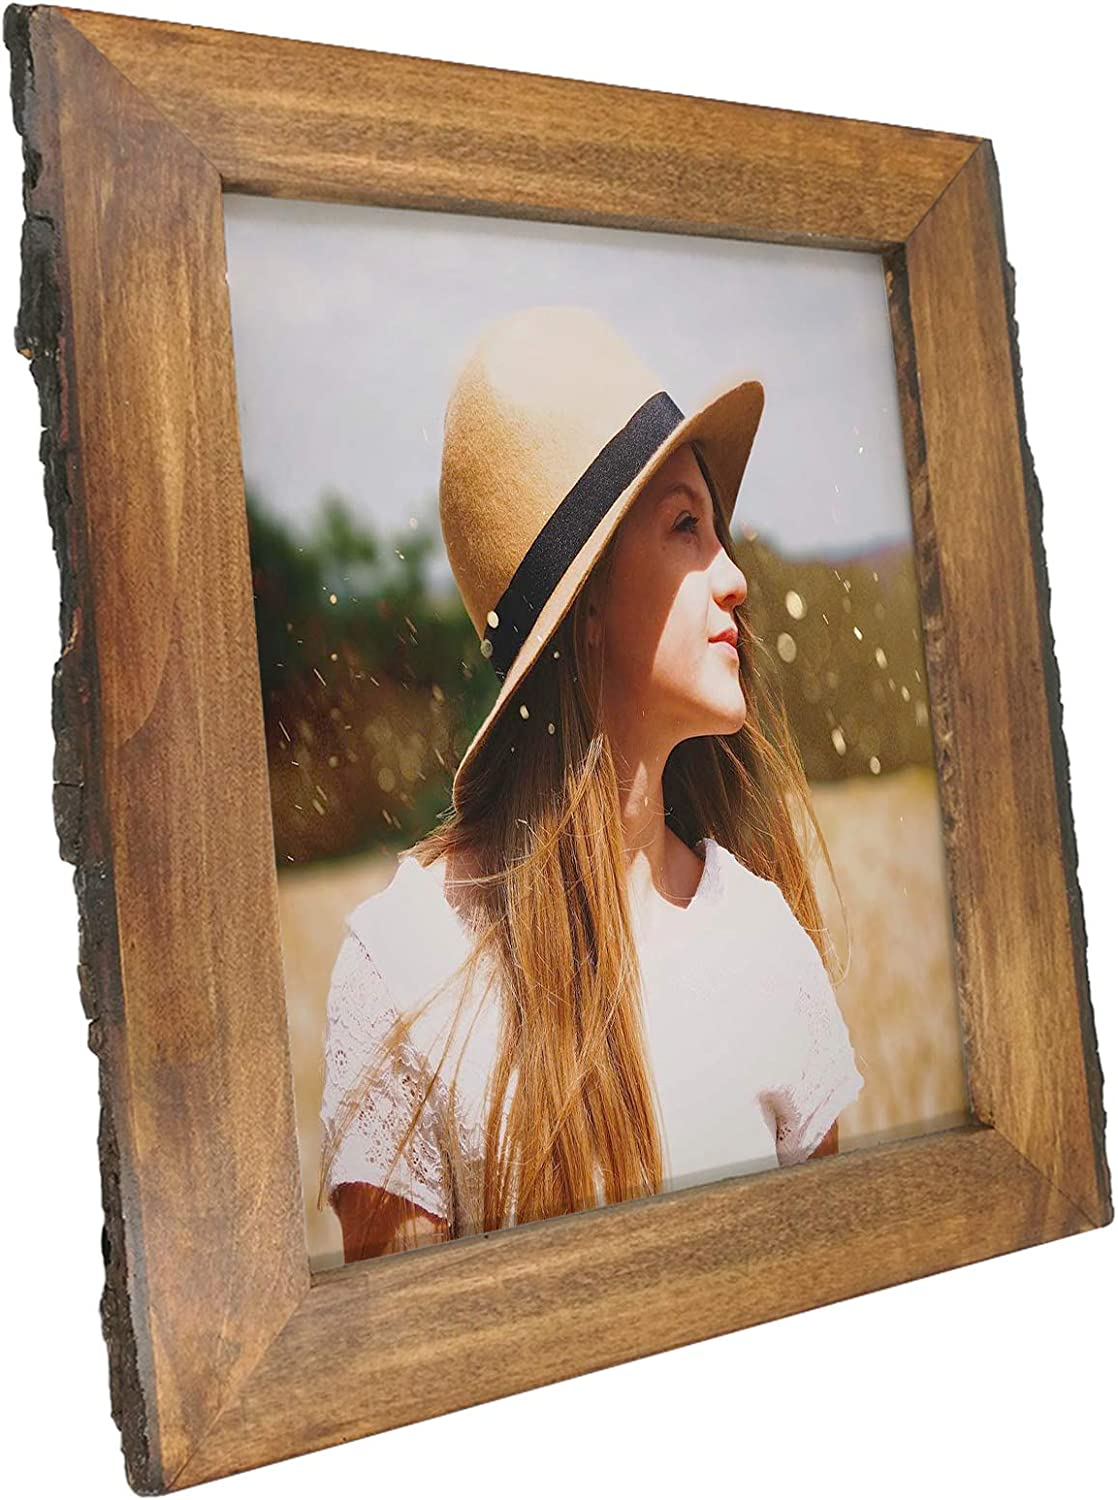 Handcrafted Frames Handmade from Nature Maine Made 8x10 Picture Frames Birch Bark Picture Frame for 8x10 Photo/'s,Birch Bark Frame